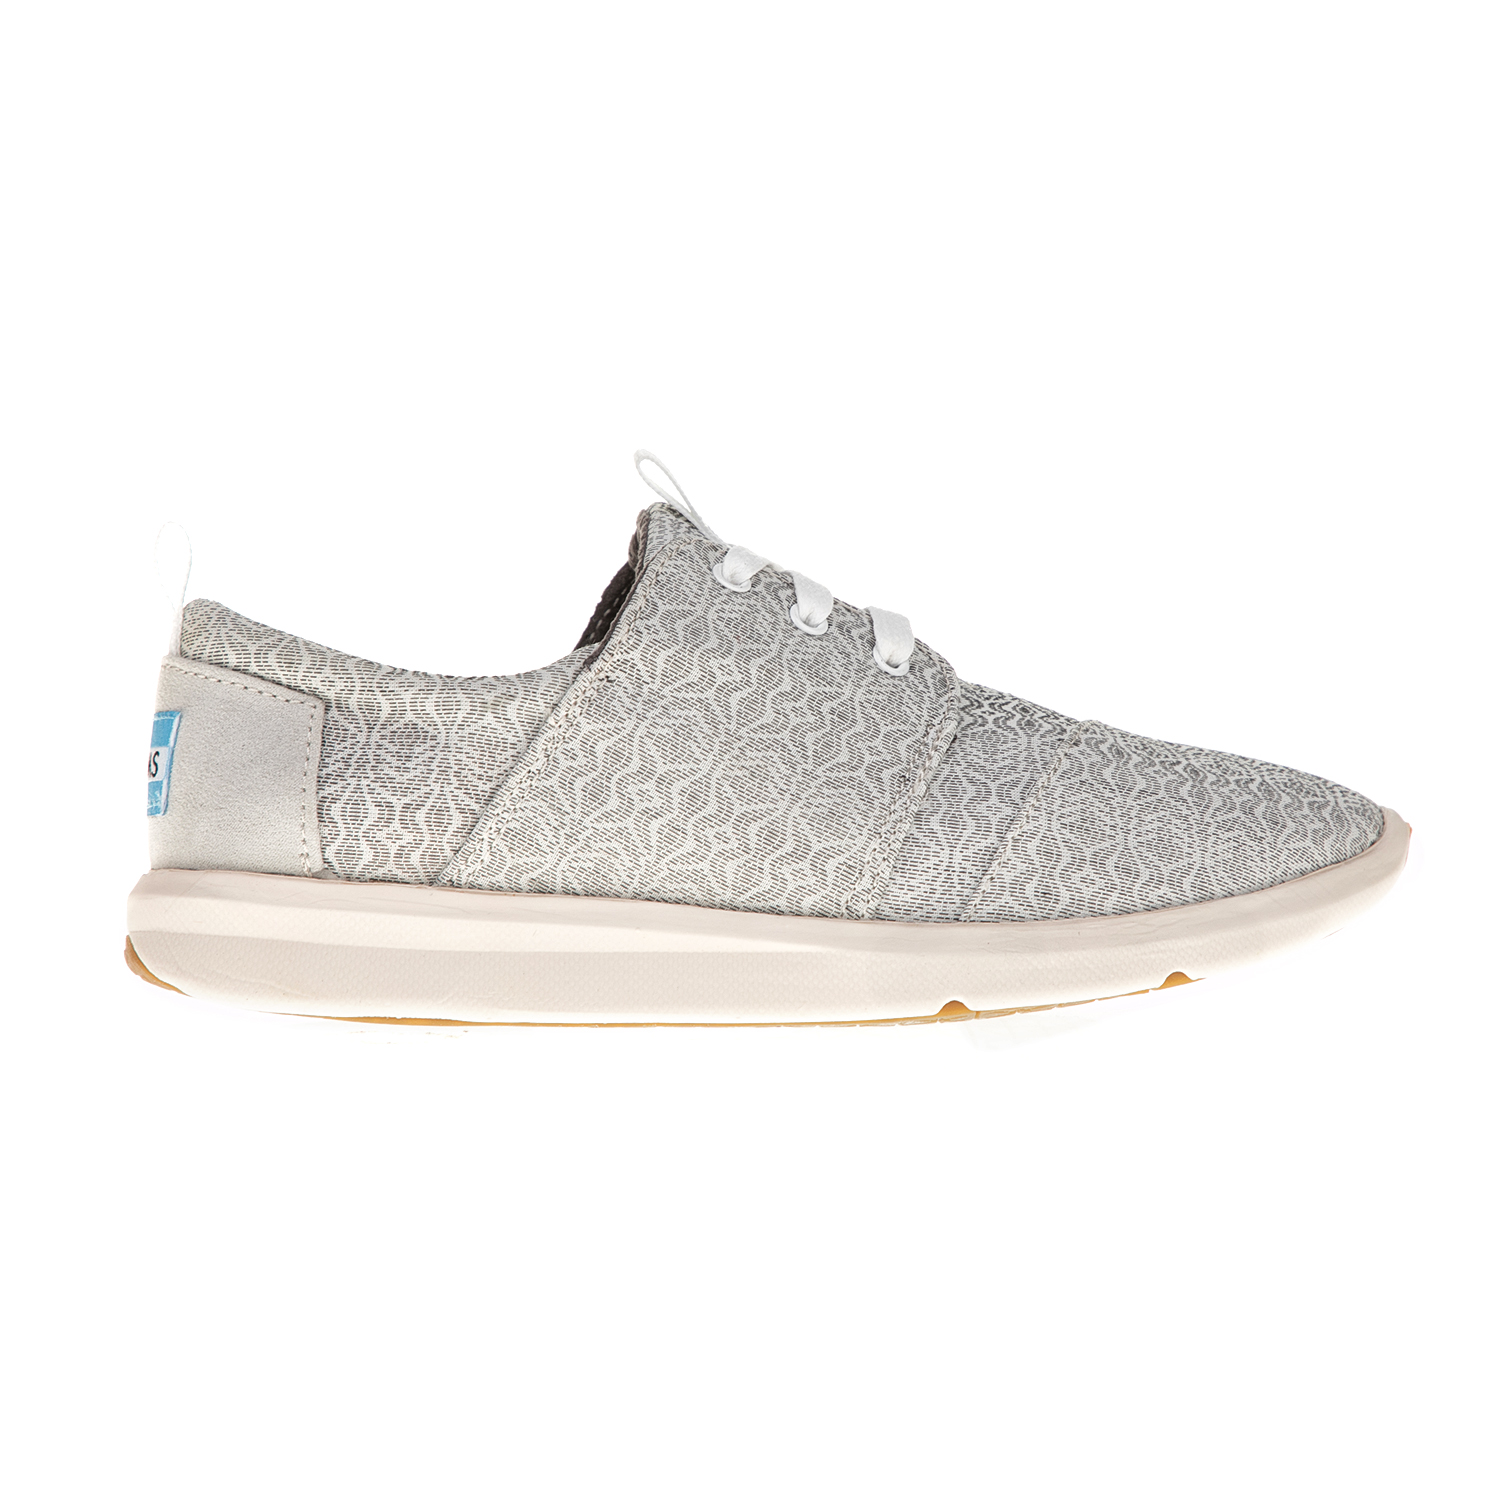 TOMS – Γυναικεία sneakers TOMS γκρι με μοτίβο